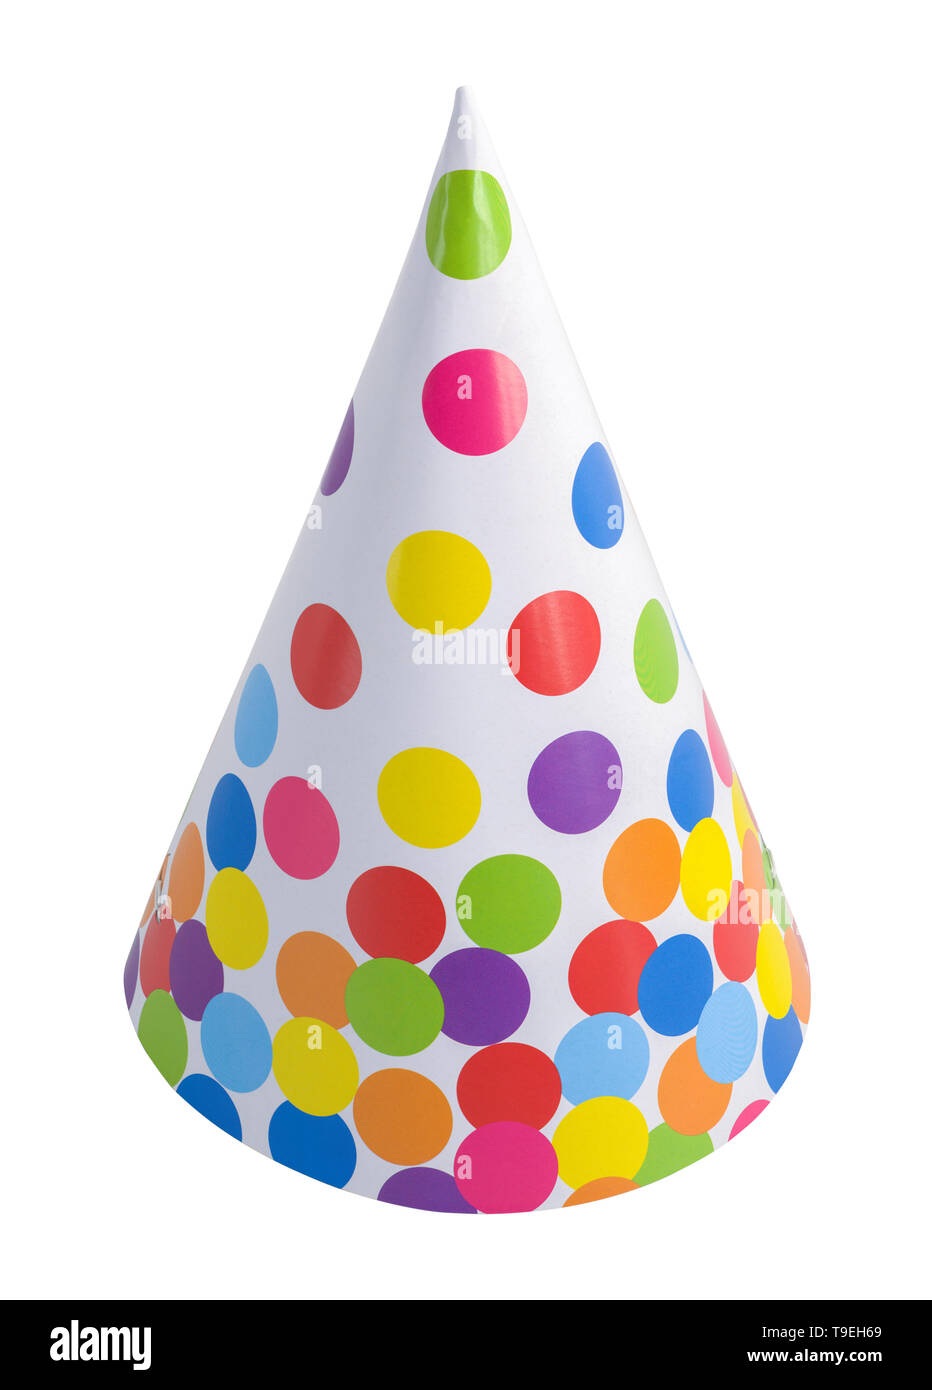 Polka Dot Party Hat Cut Out On White. Stock Photo